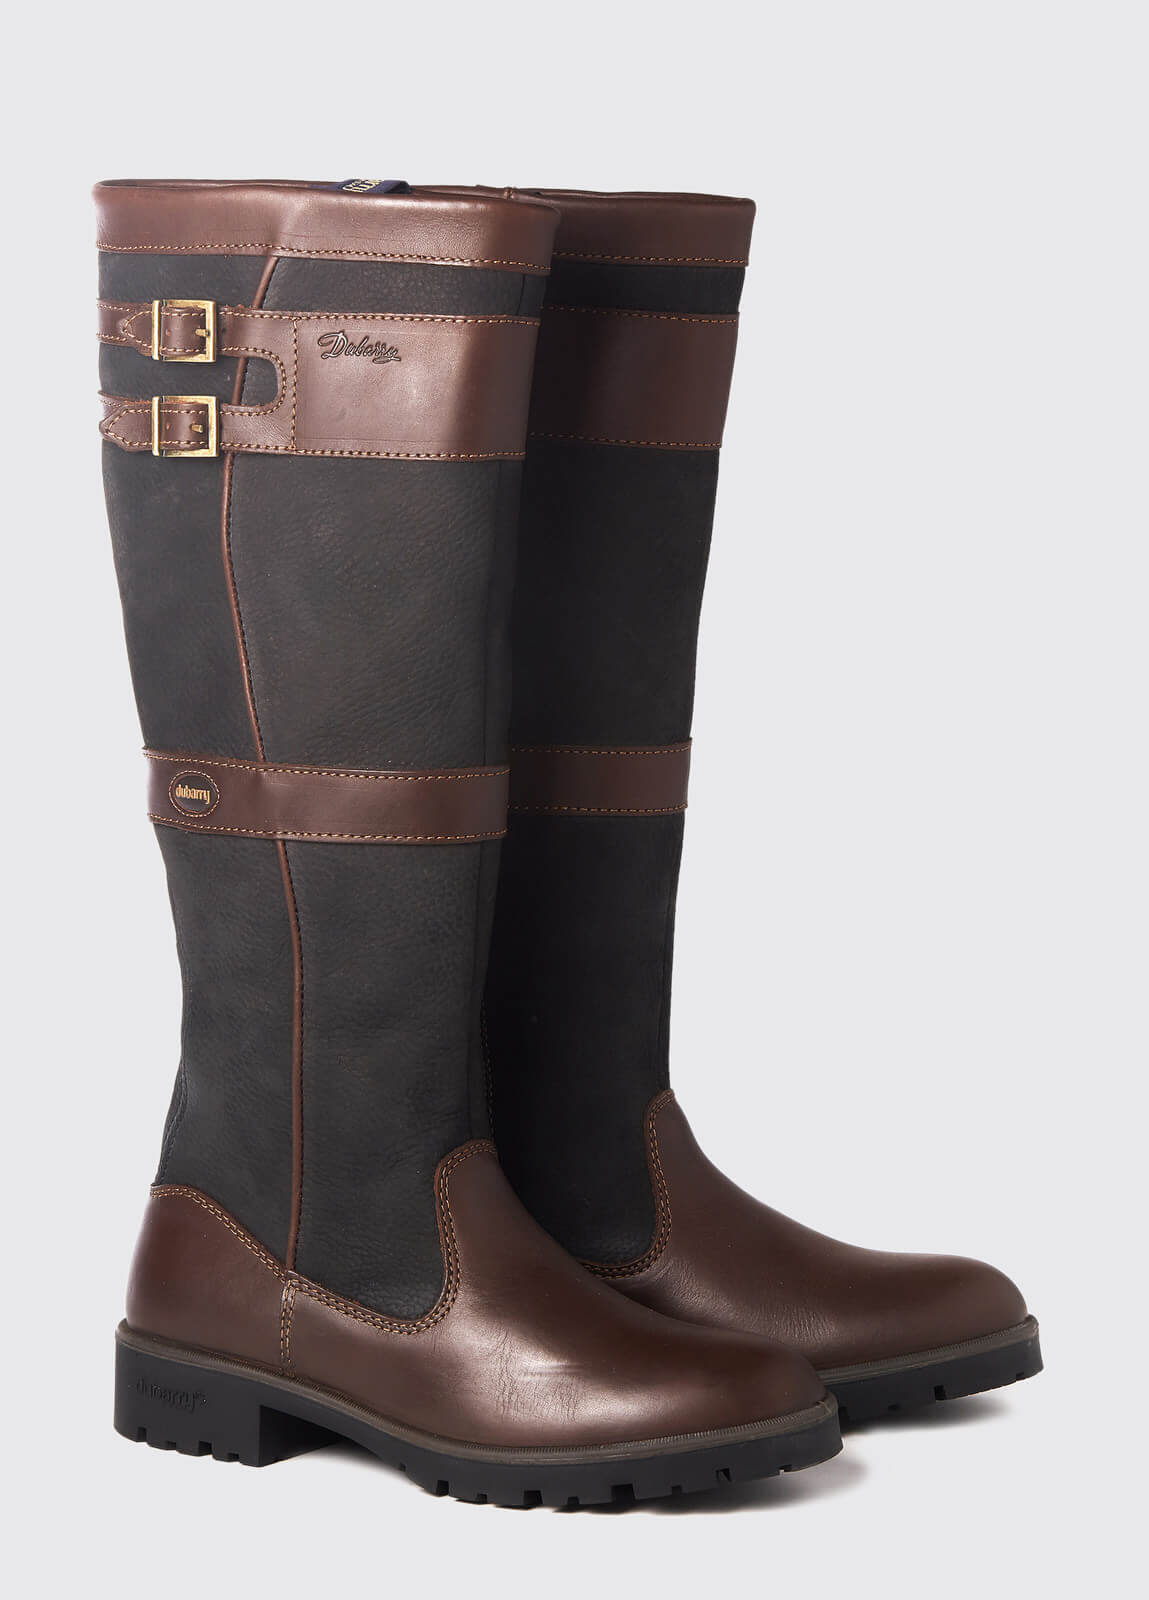 Longford Country Boot - Black/Brown